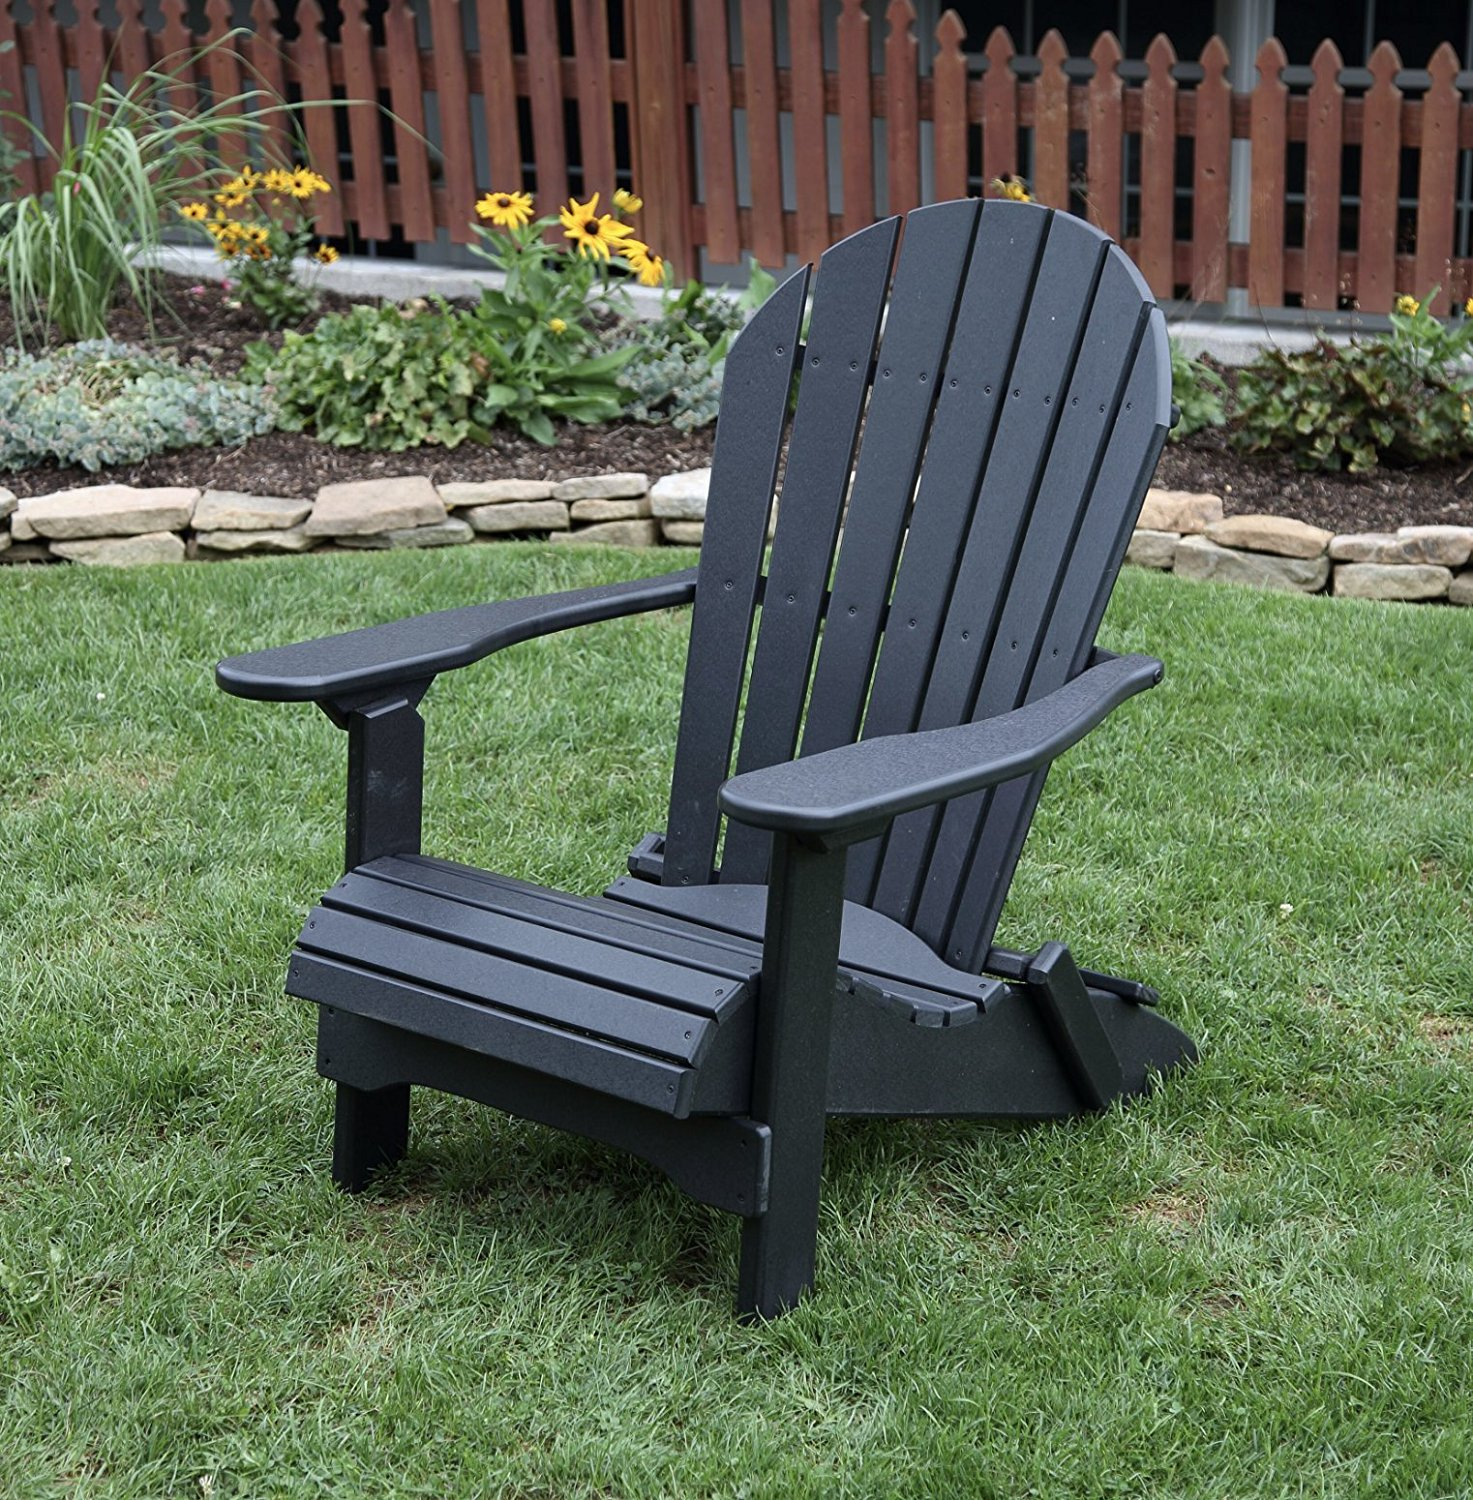 Outdoor Garden Lawn Exterior Black Finish Poly Lumber Rolled Seating Heavy Duty Everlasting Amish Crafted Folding Adirondack Chair